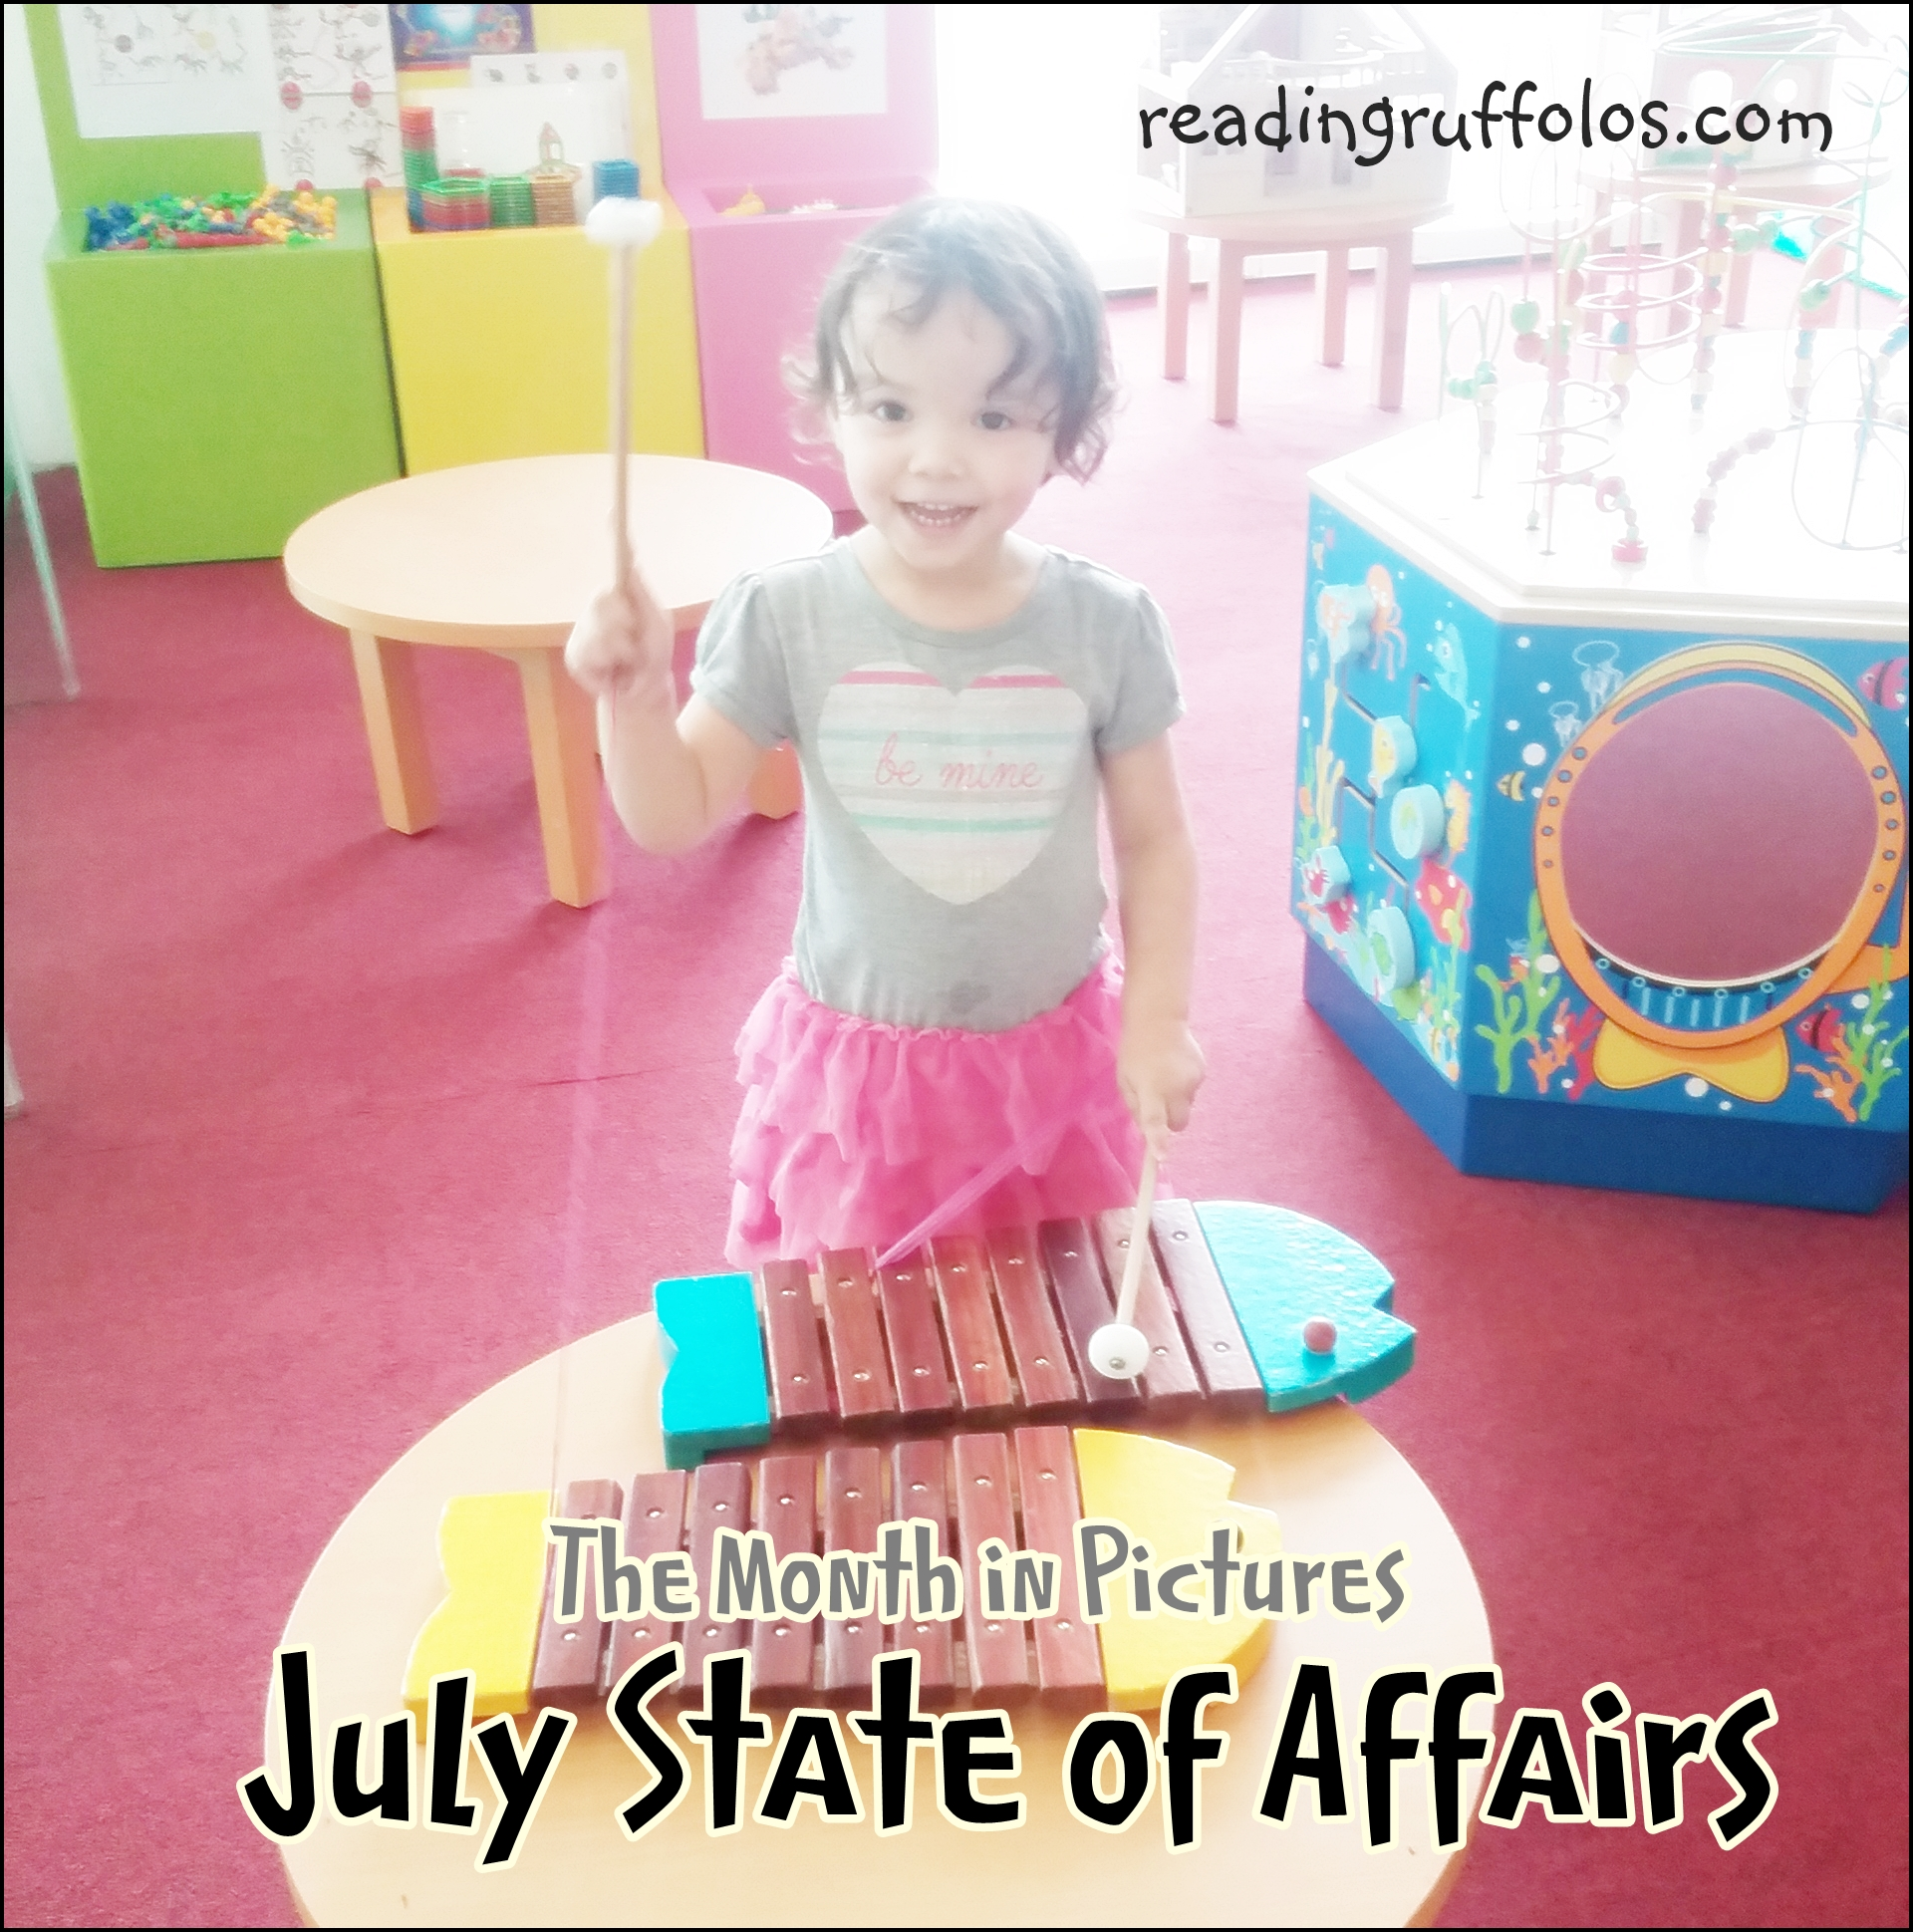 Cover - July State of Affairs - readingruffolos